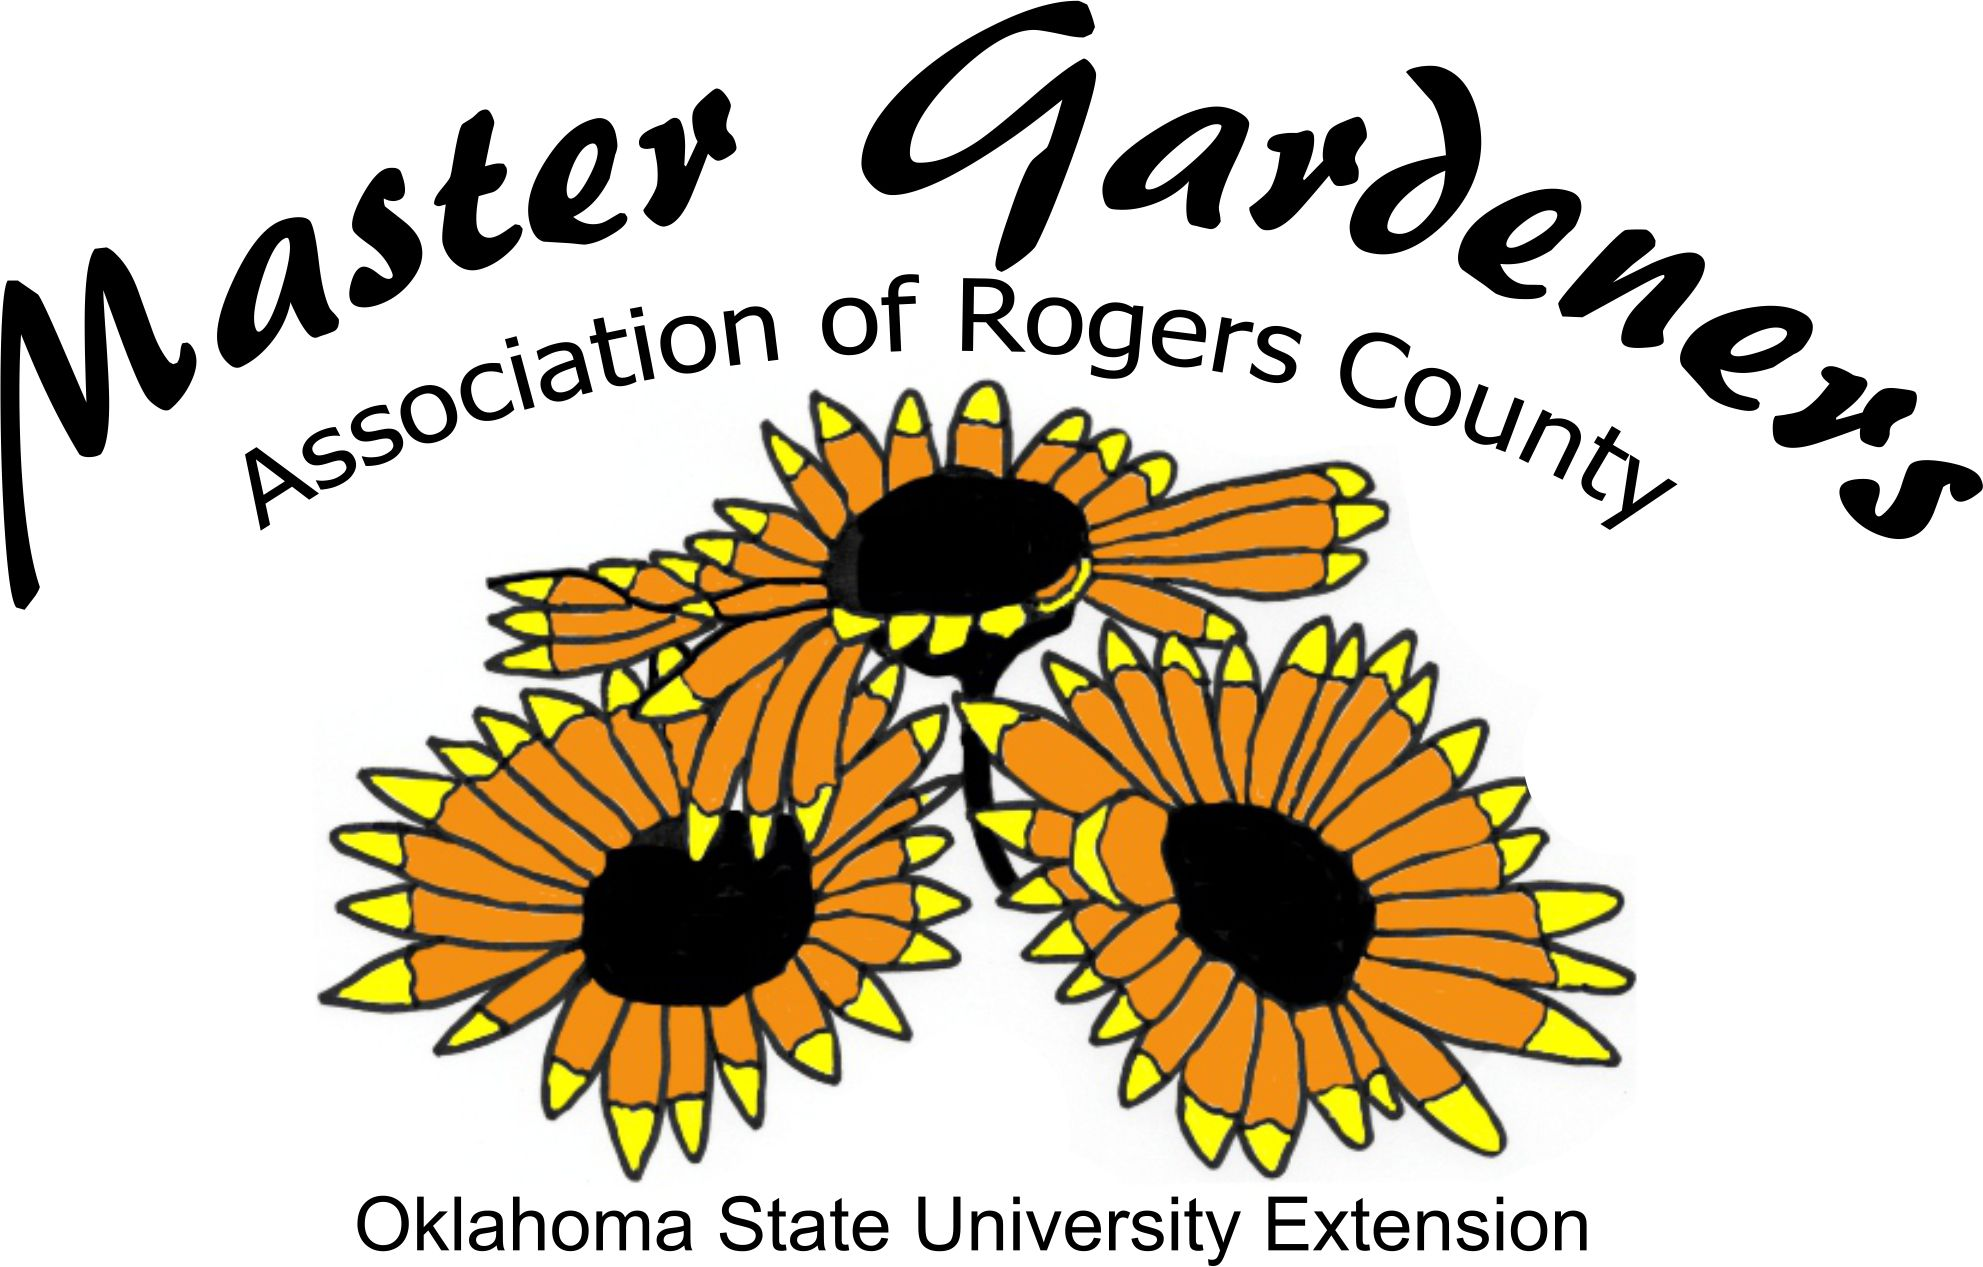 Master Gardeners of Rogers County logo